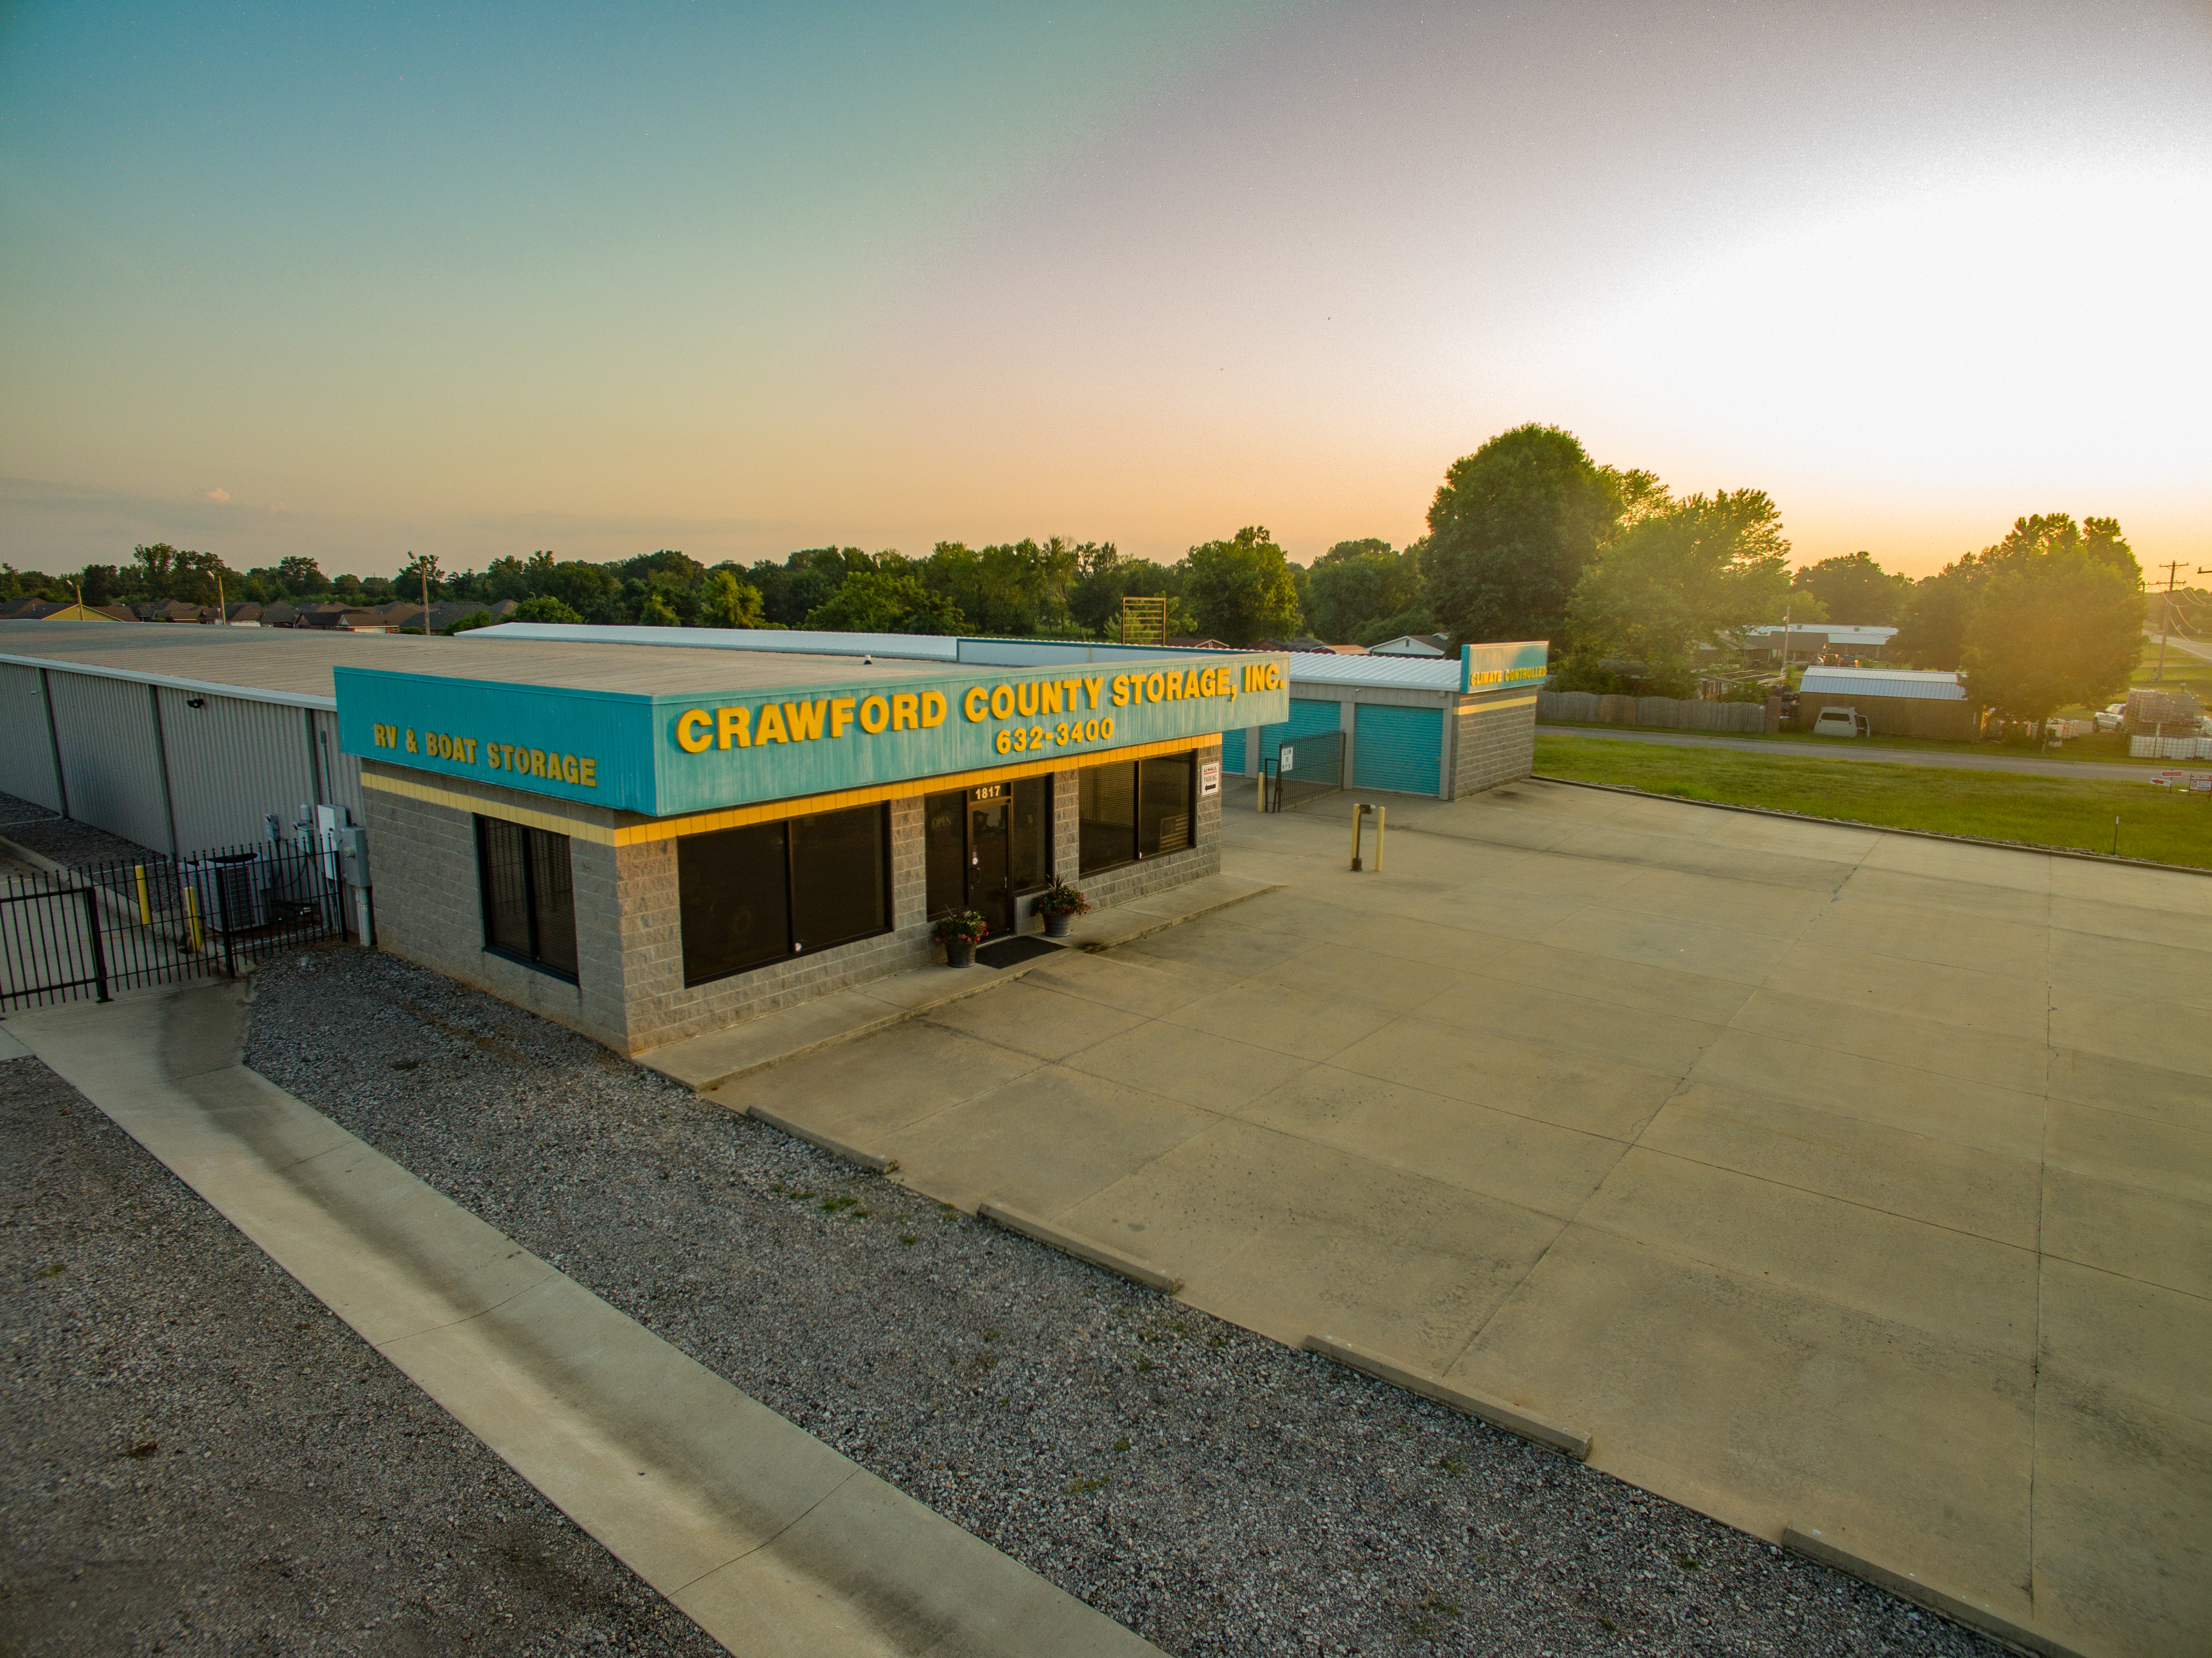 Crawford County Self Storage facility front